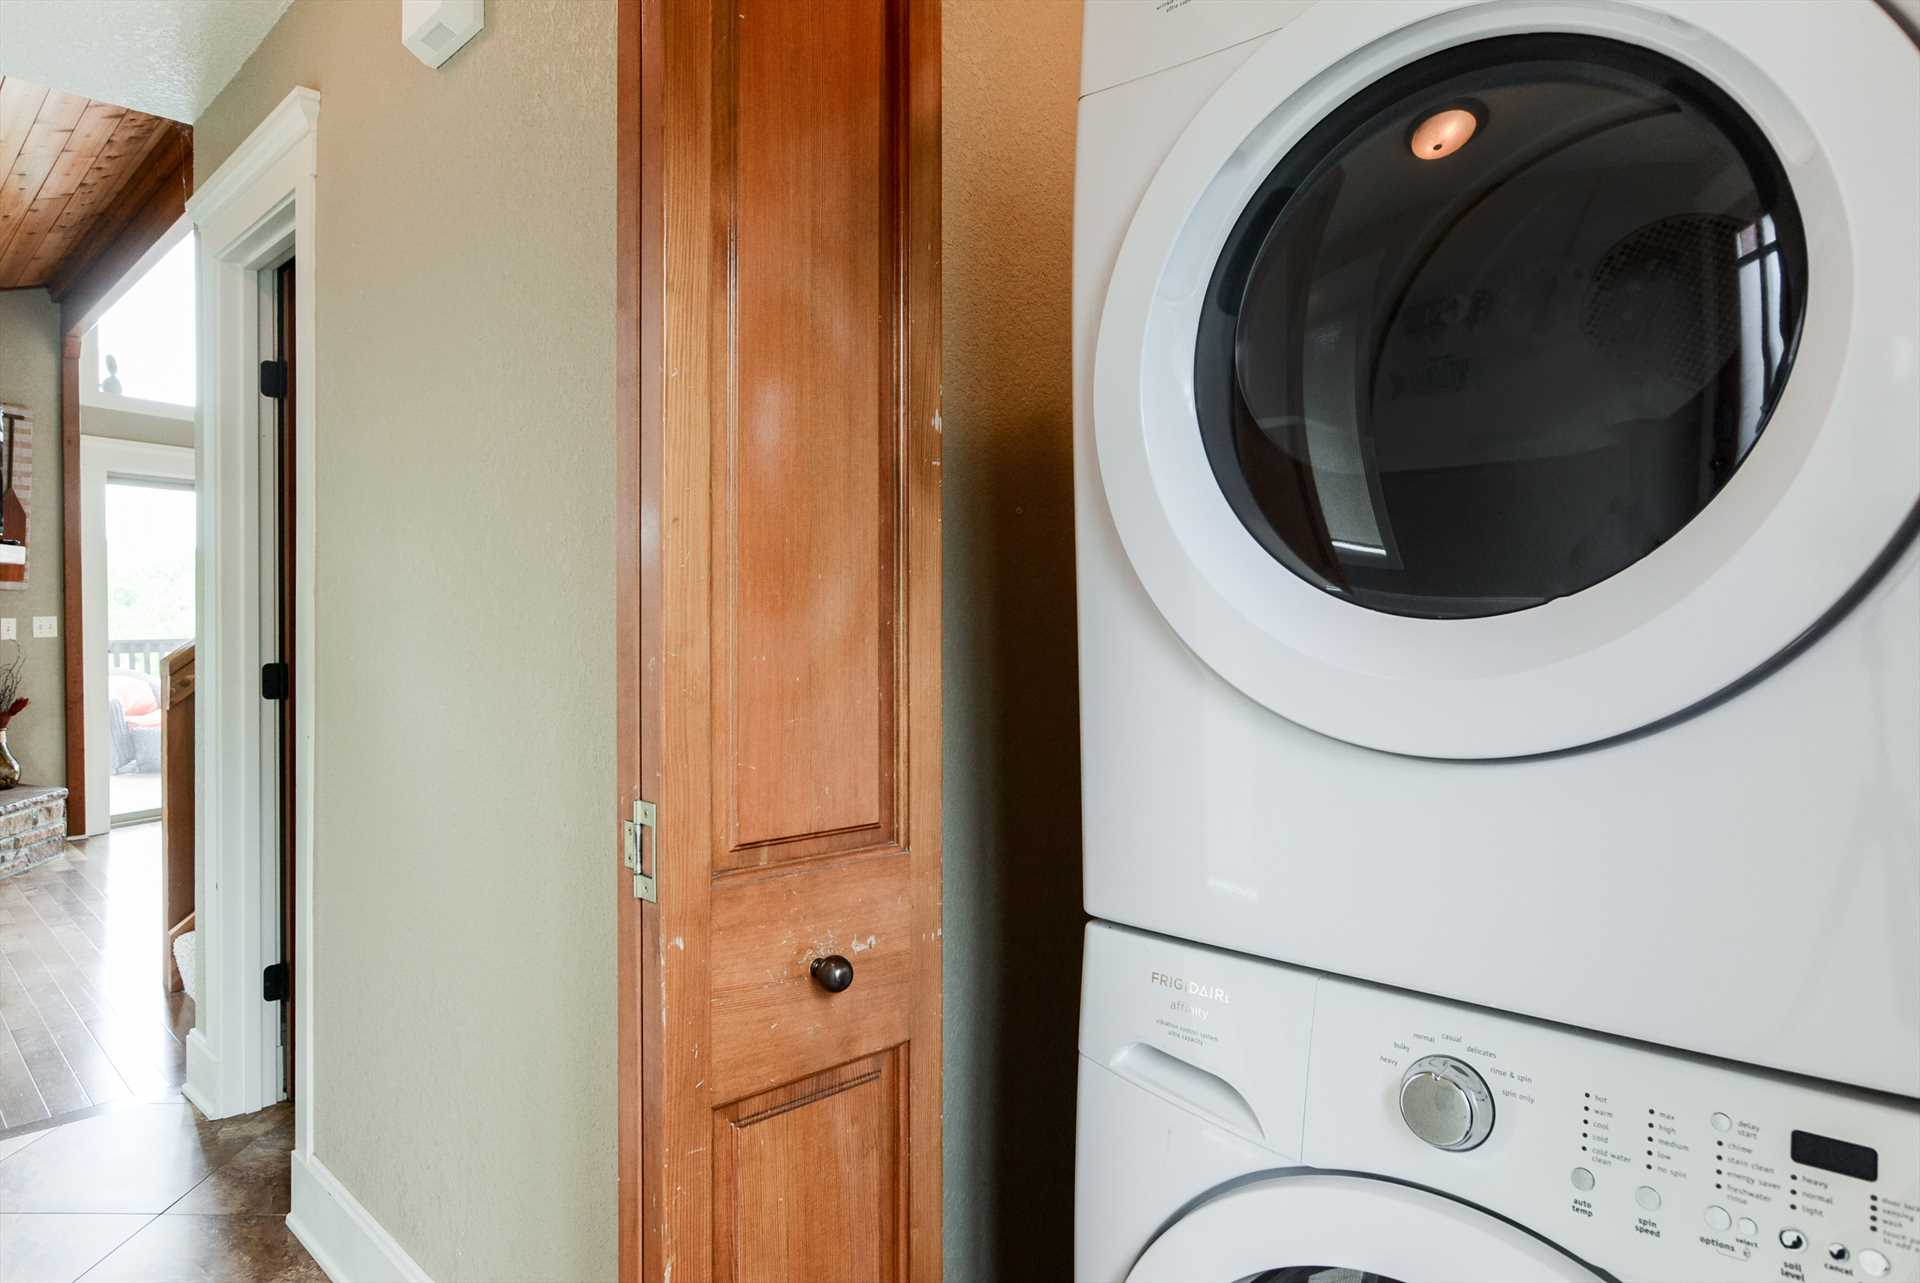 Laundry doesn't take a vacation - good thing this property i